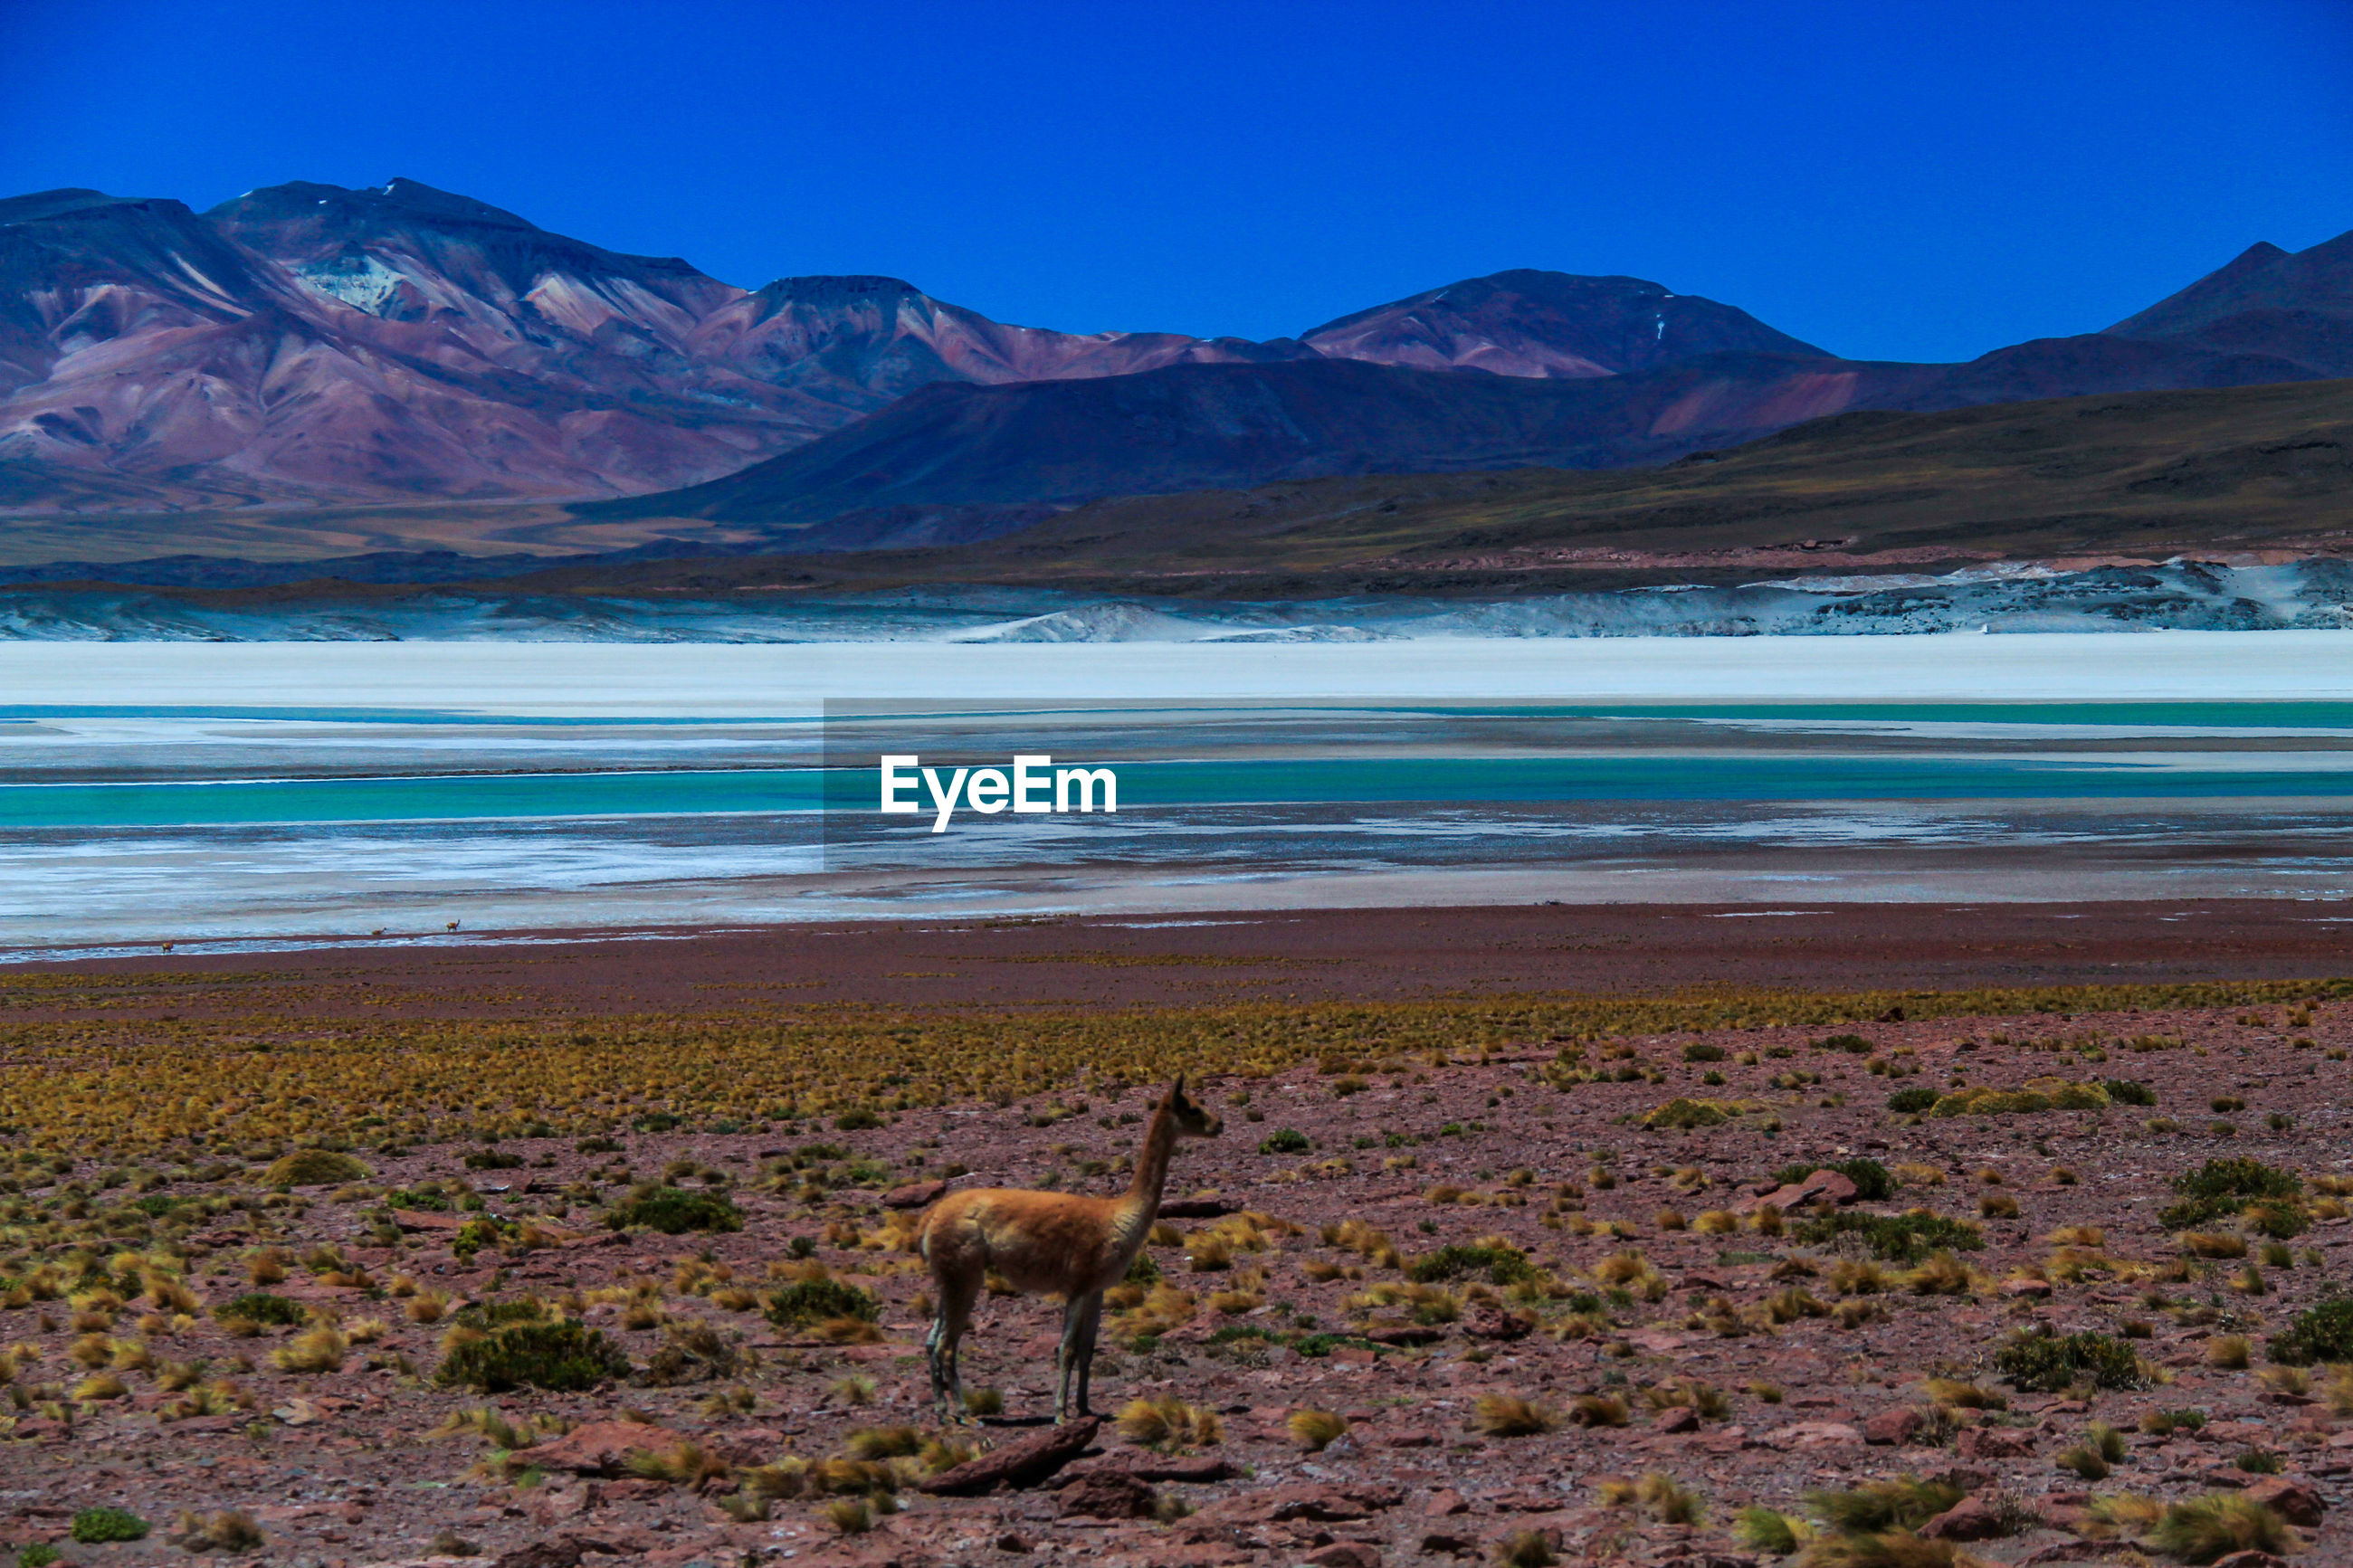 View of an alpaca next to a salt lake in the mountains